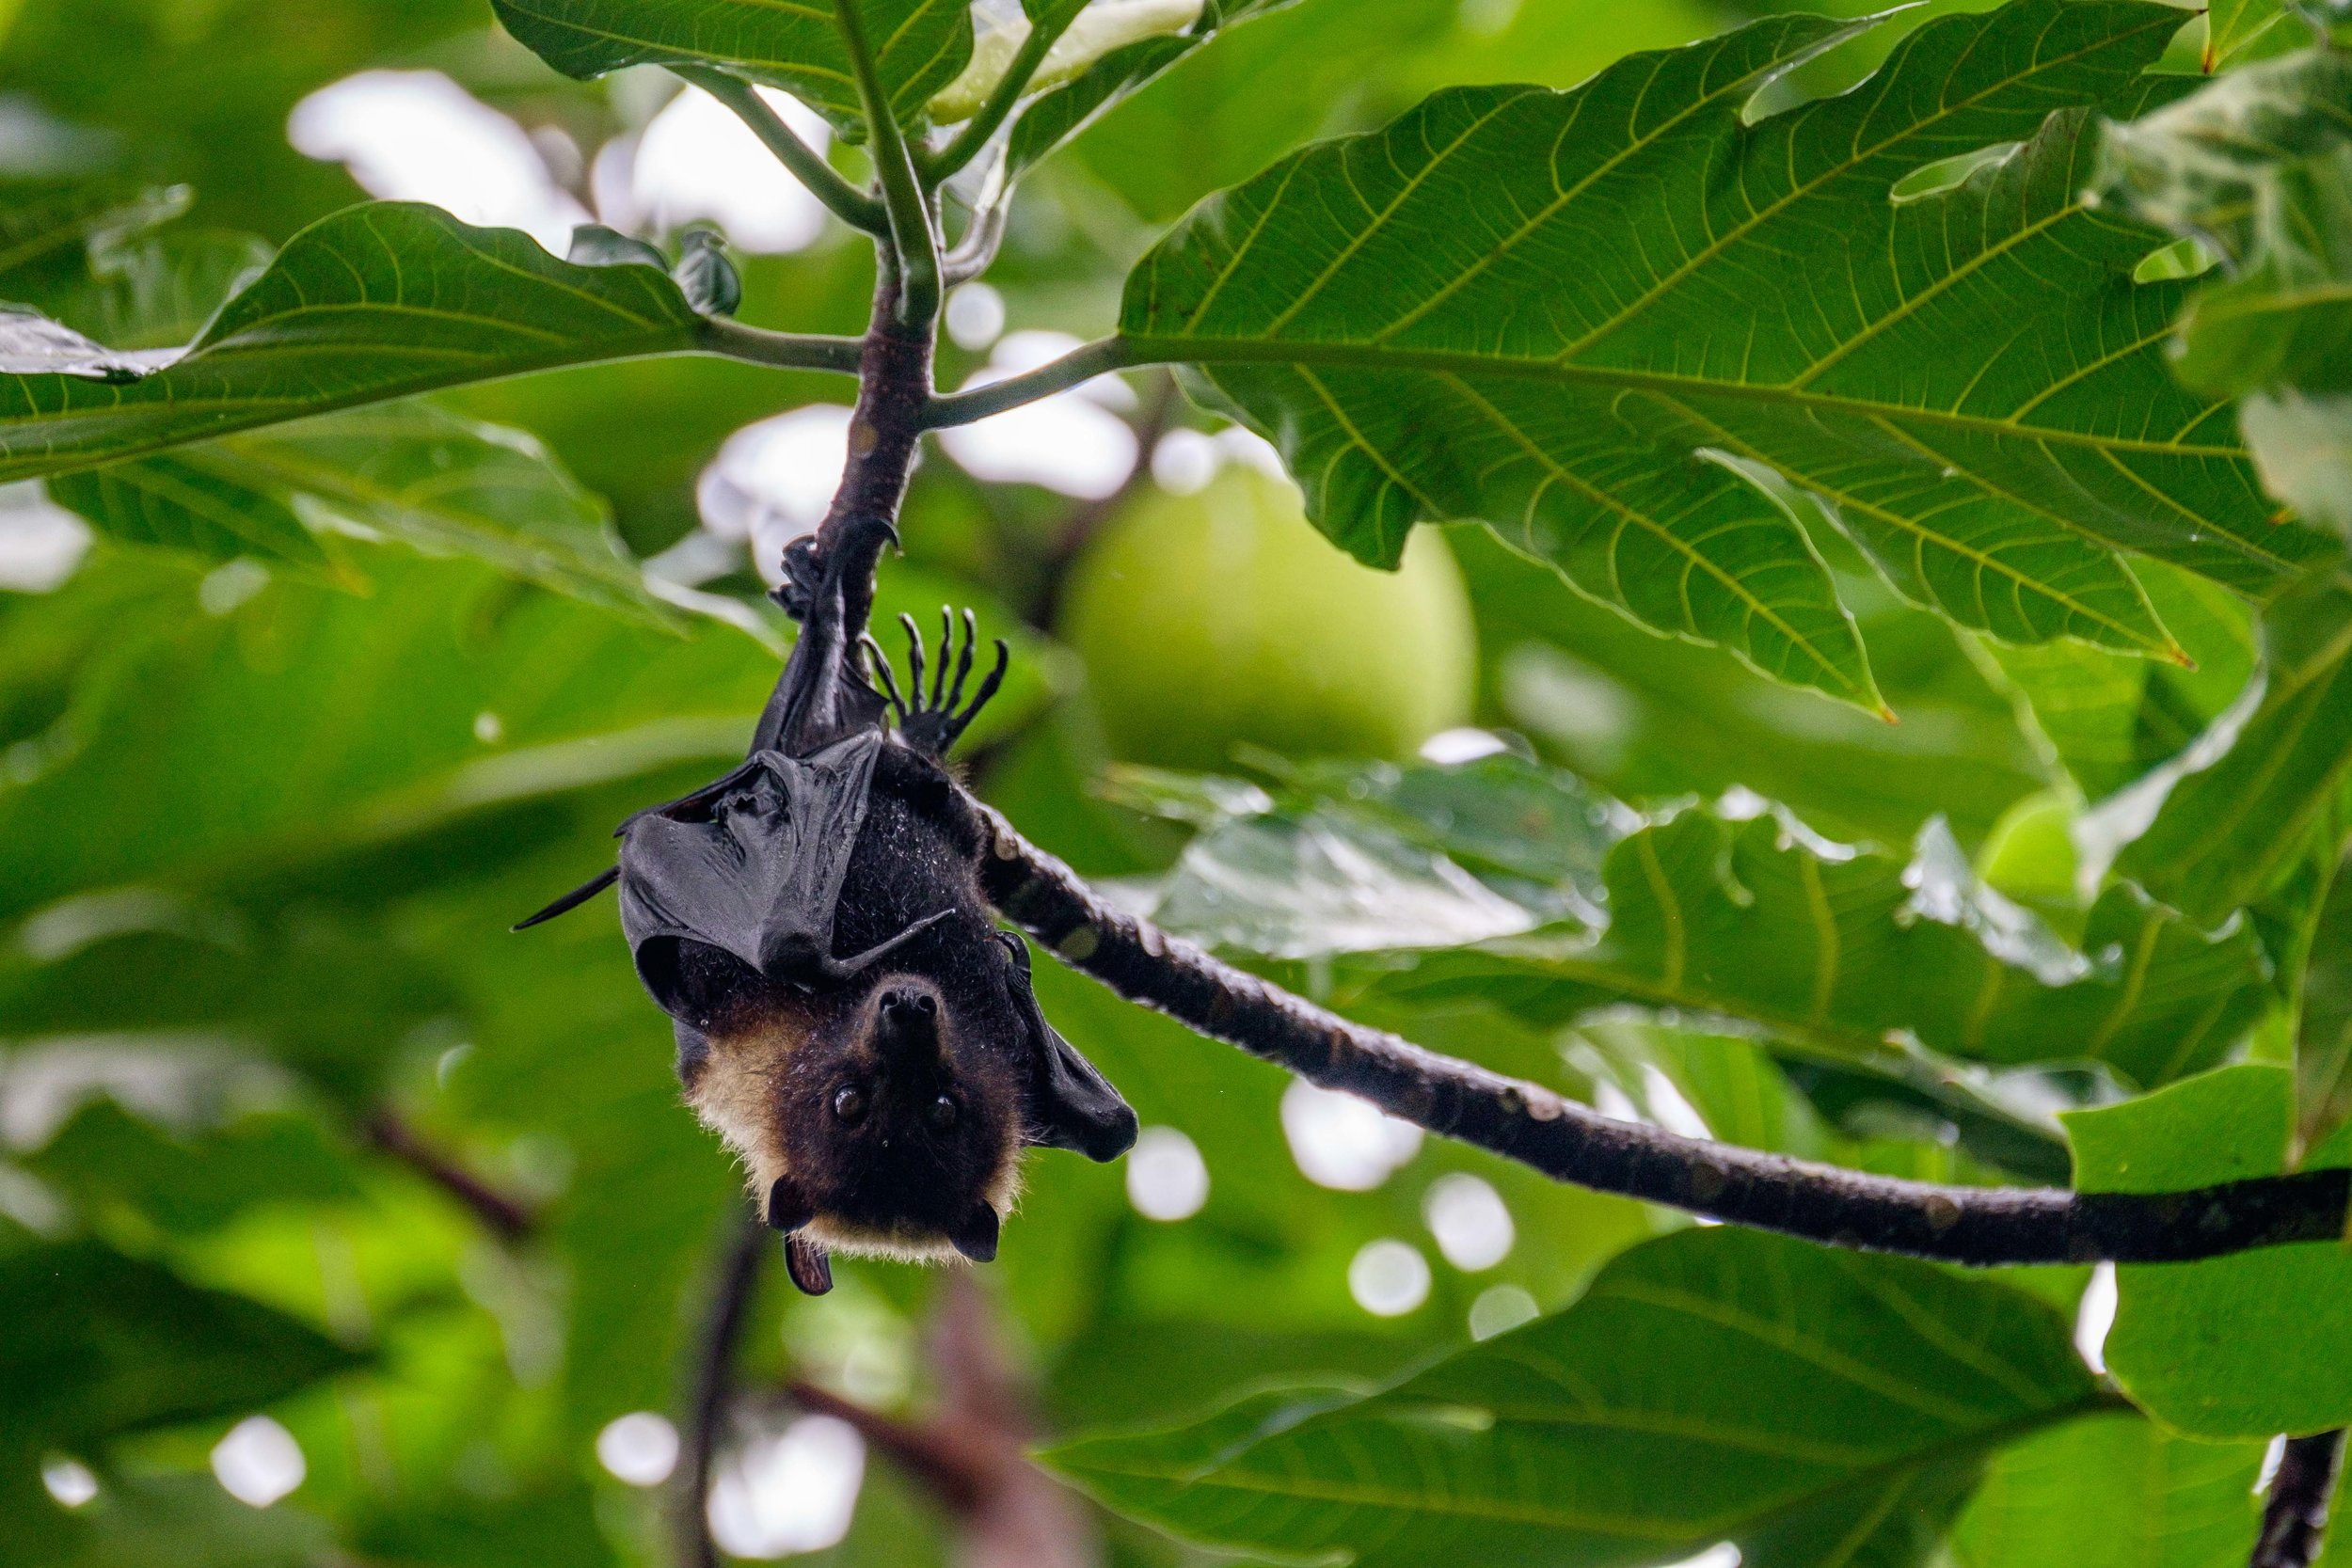 Fruit bats are common in all areas of the National Park of American Samoa, and they are one of top priorities of protection in the park. This one hangs from a banana tree in the mid-afternoon—a common sighting.